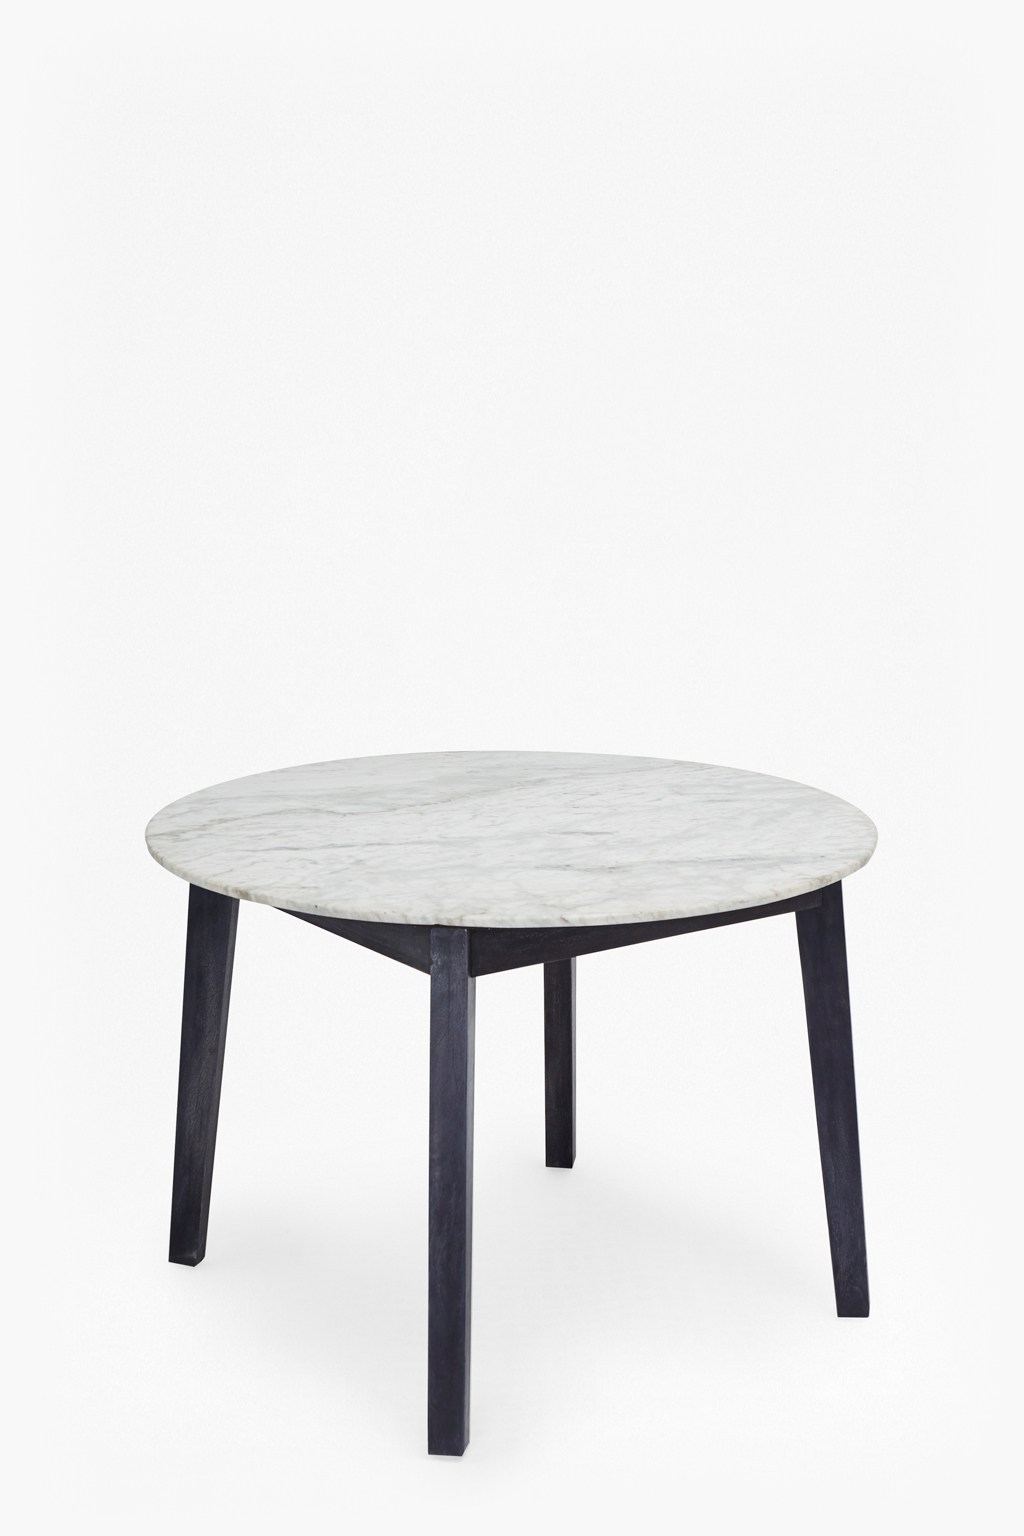 Round marble table - Agra Round Marble Dining Table Loading Images